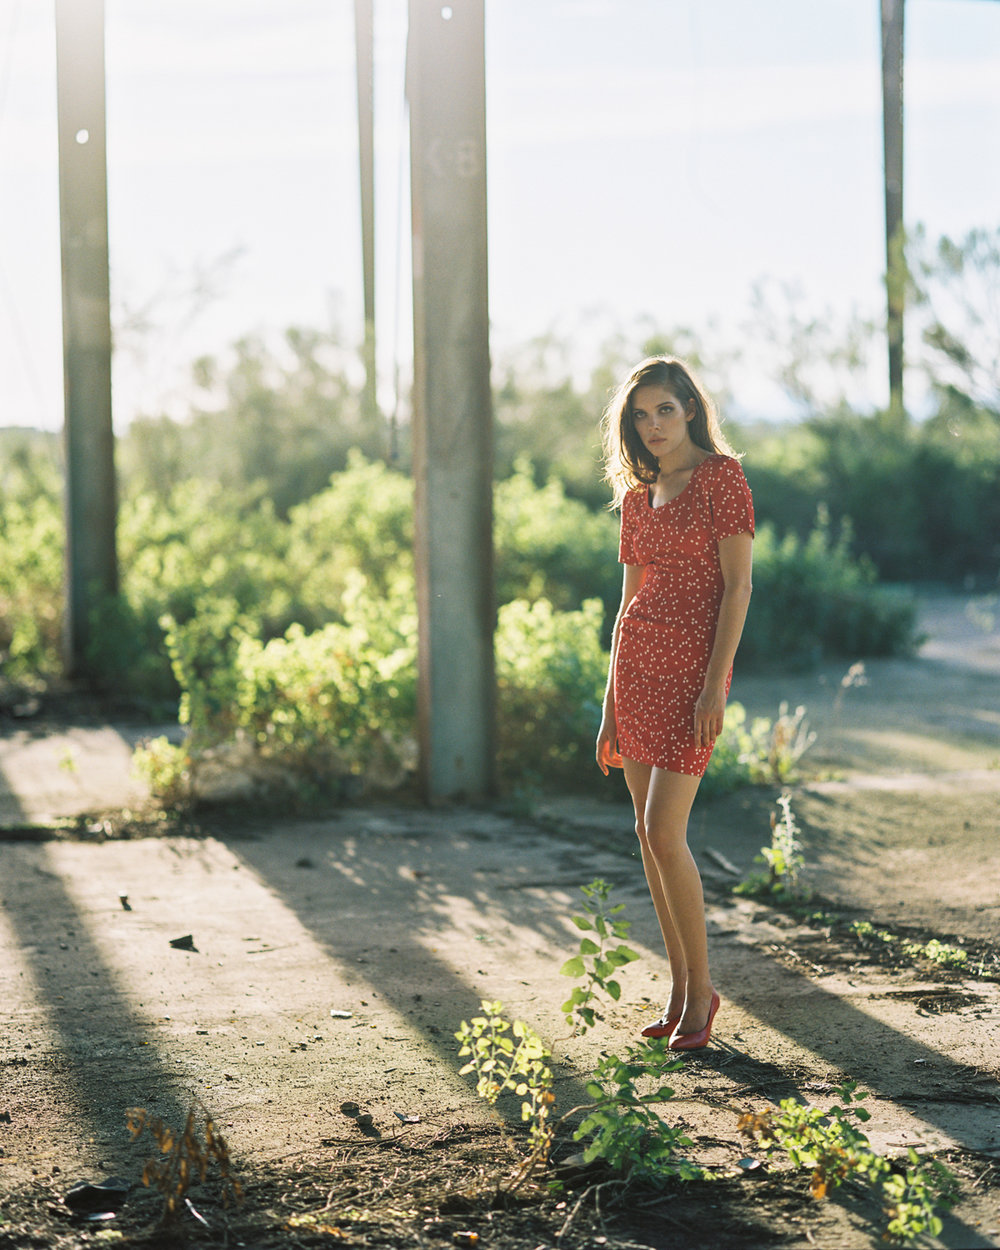 10_Jennifer_Arizona_Pentax_67_kodak_Portra_400_wearhouse_Red_dress_Portrait_Copyright_Taylor_Noel_Photography.jpg